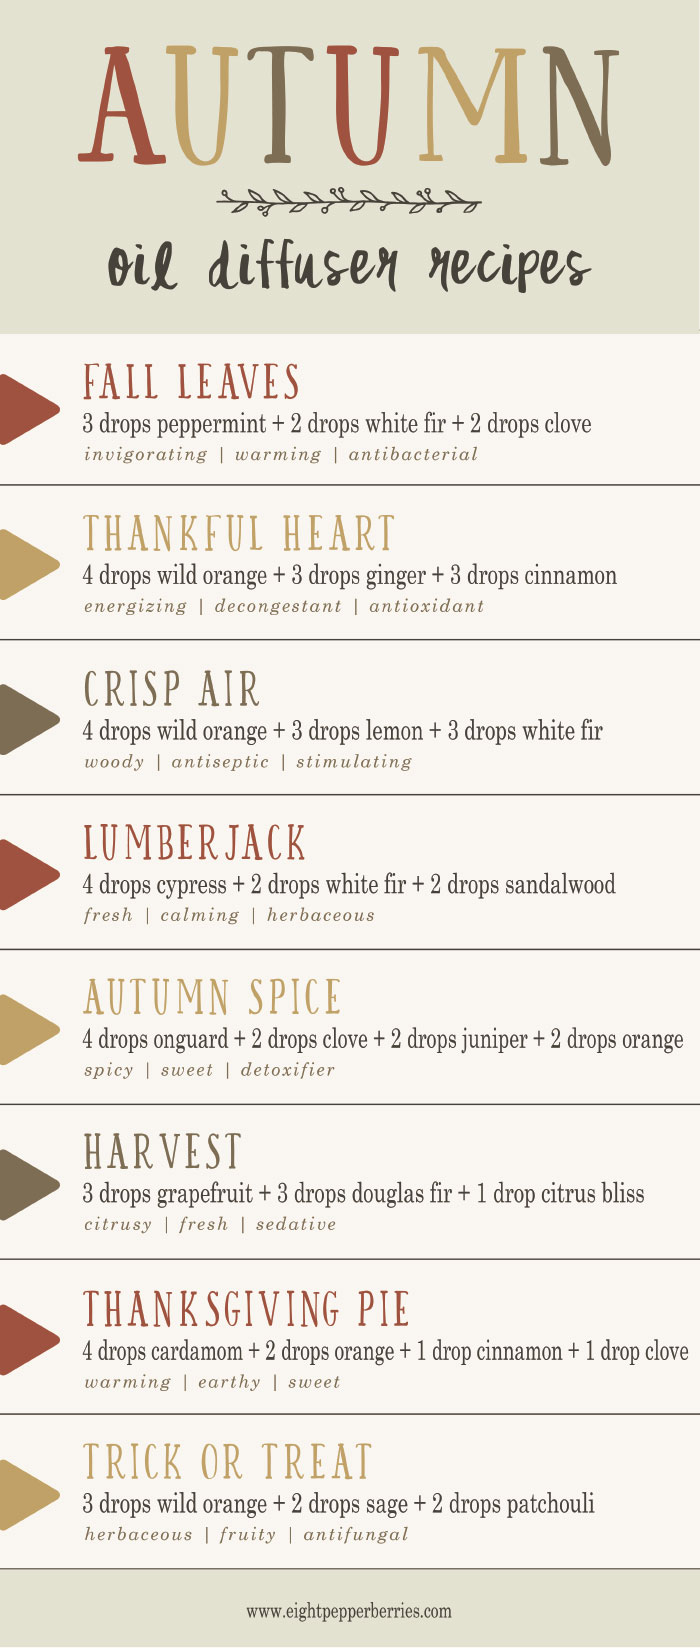 autumn-oil-diffuser-recipes5